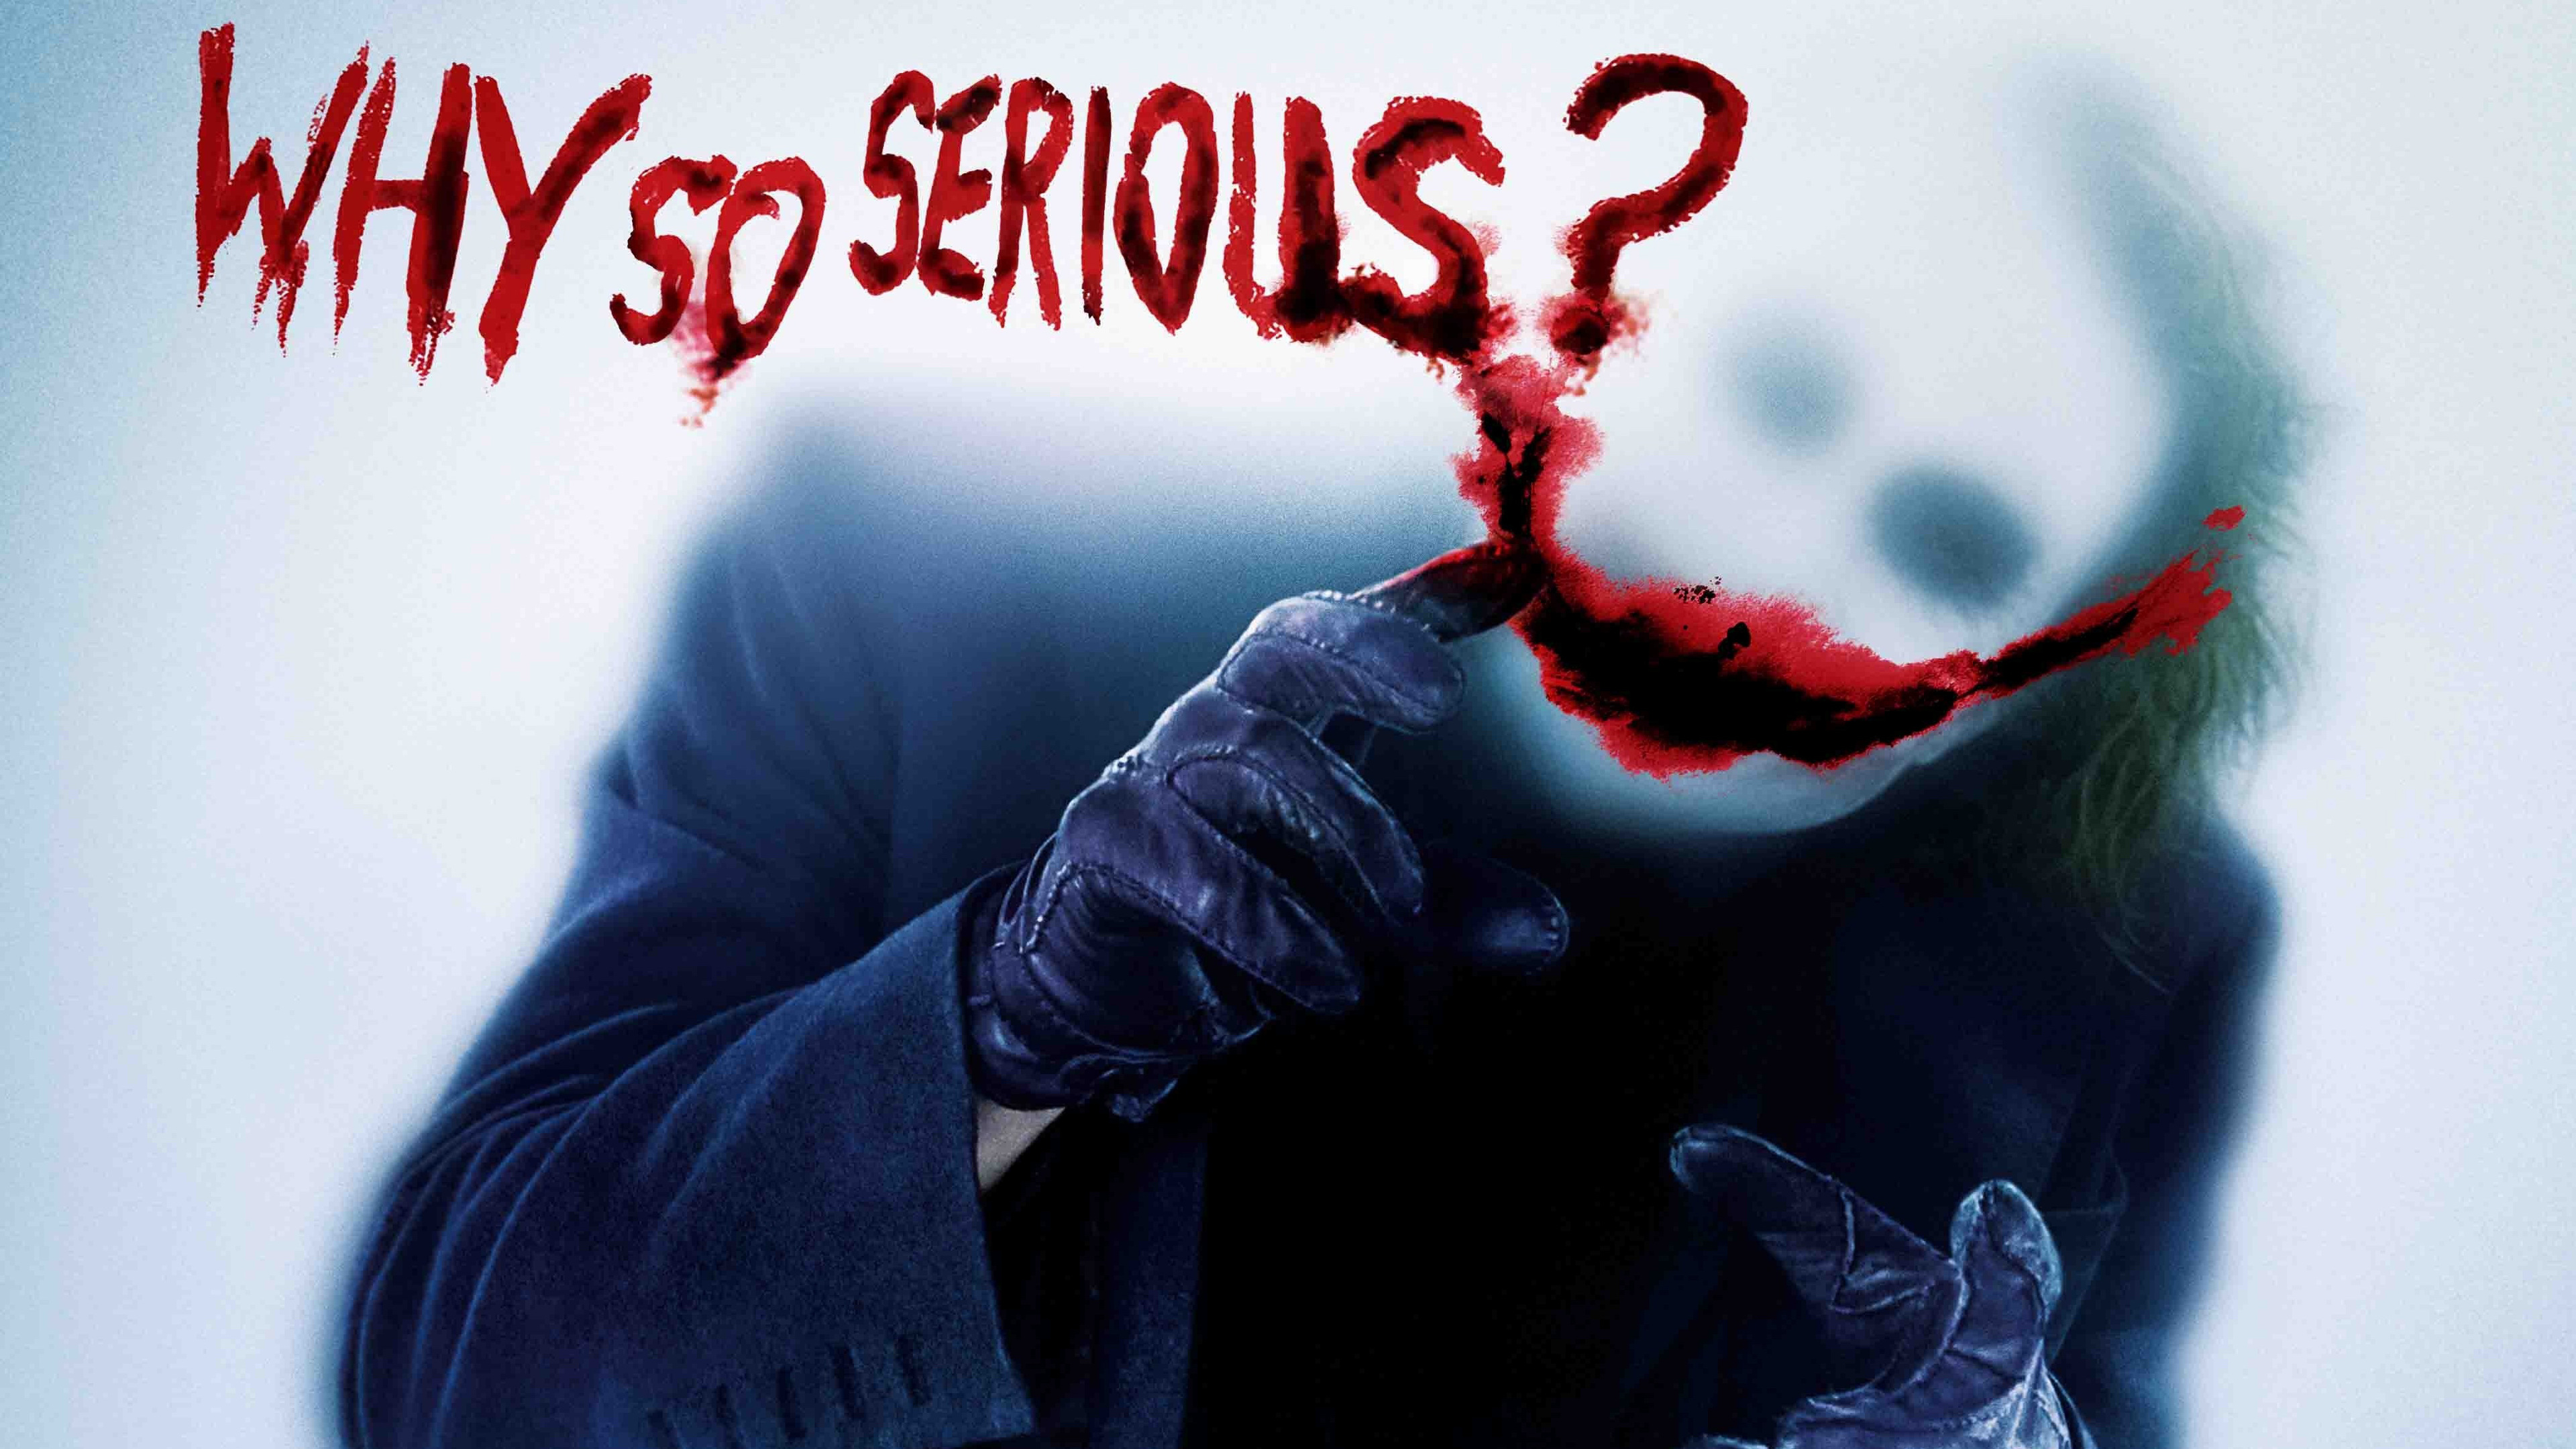 3840x2160 Joker Why So Serious 4k HD 4k Wallpapers, Images ...